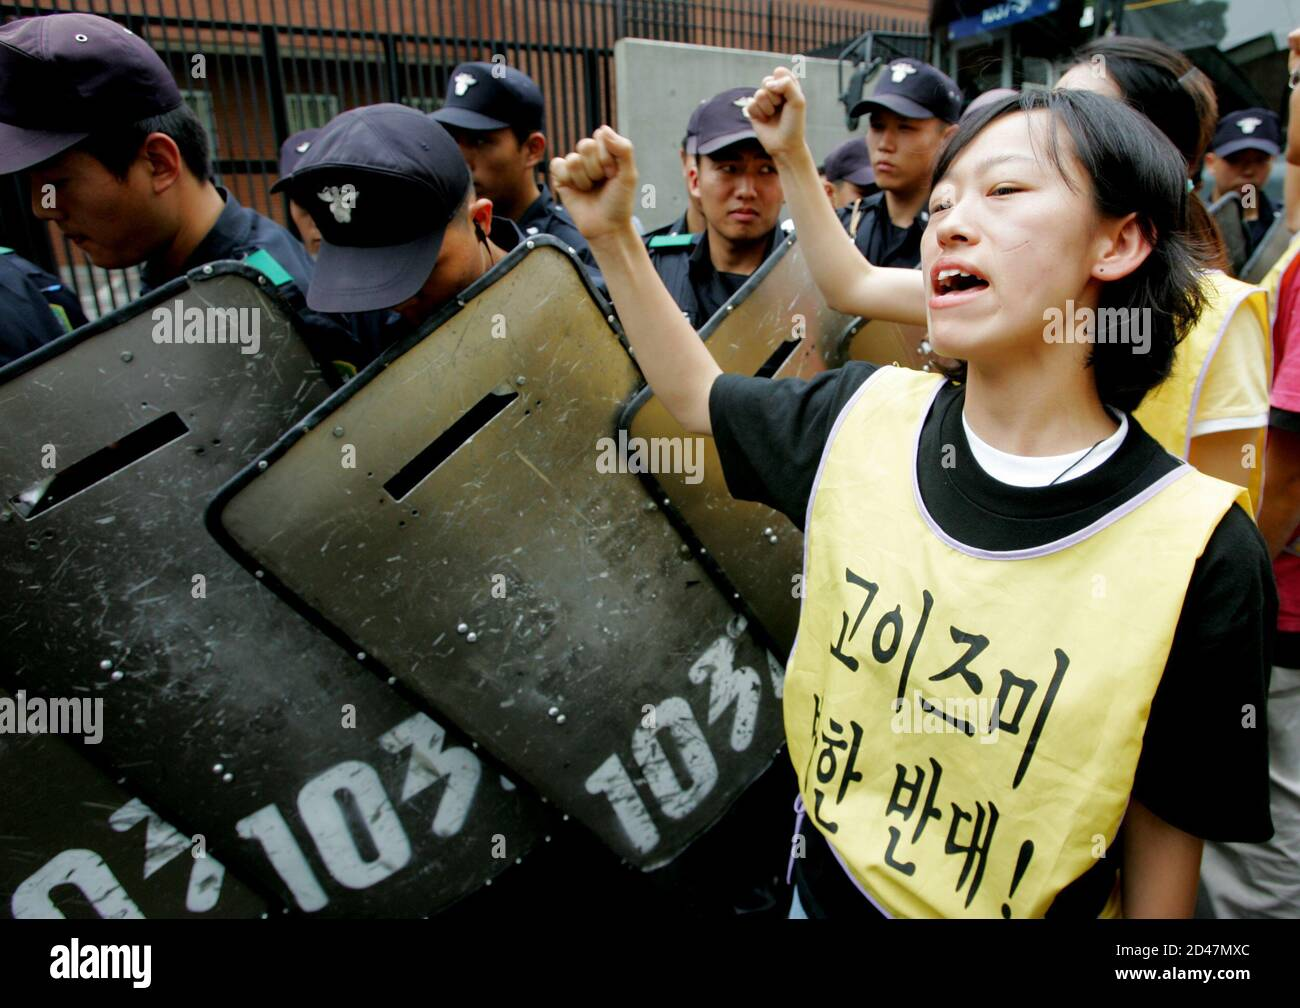 "South Korean riot police block protesters shouting slogans at an anti-Japan rally against Japanese Prime Minister Junichiro Koizumi's visit to South Korea in front of the Japanese embassy in Seoul June 15, 2005. Koizumi will try to mend fences when he meets South Korean President Roh Moo-hyun next Monday, but the summit is a gamble given the slim chances of improving frayed relations. The slogan in the vest reads ""Opposed to Japanese Prime Minister Junichiro Koizumi's visit to South Korea"". REUTERS/You Sung-Ho  KKH/CCK Stock Photo"